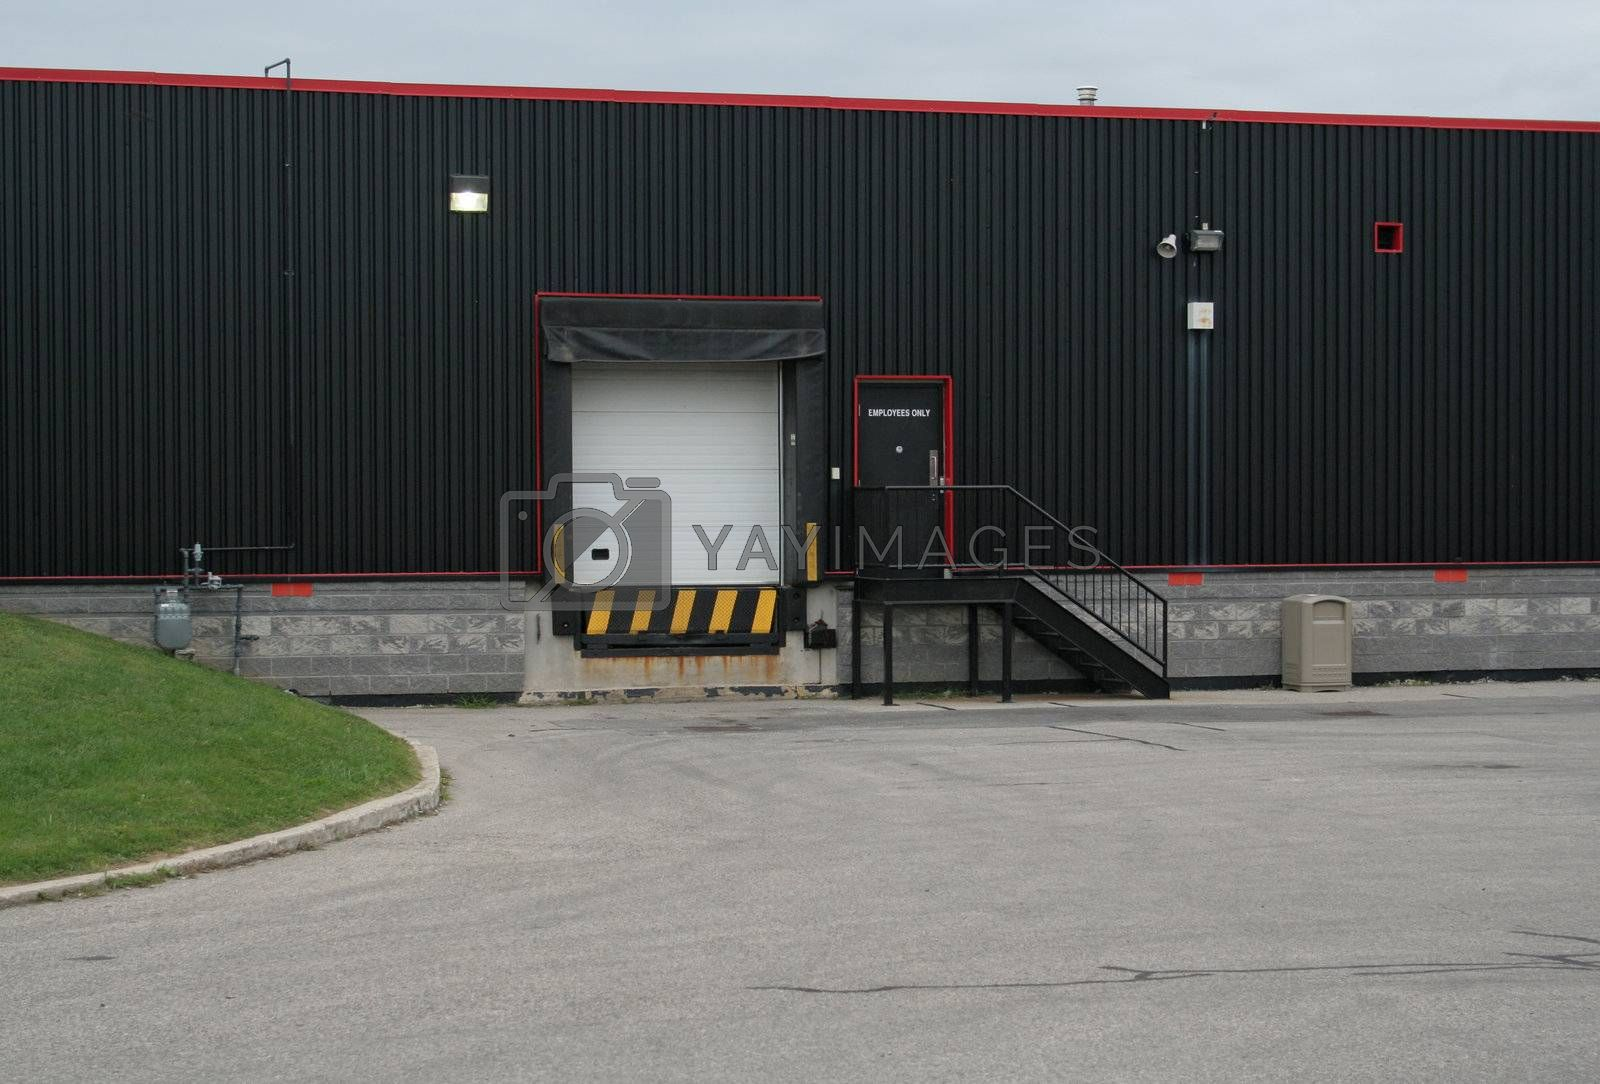 The exterior loading dock of an industrial warehouse.